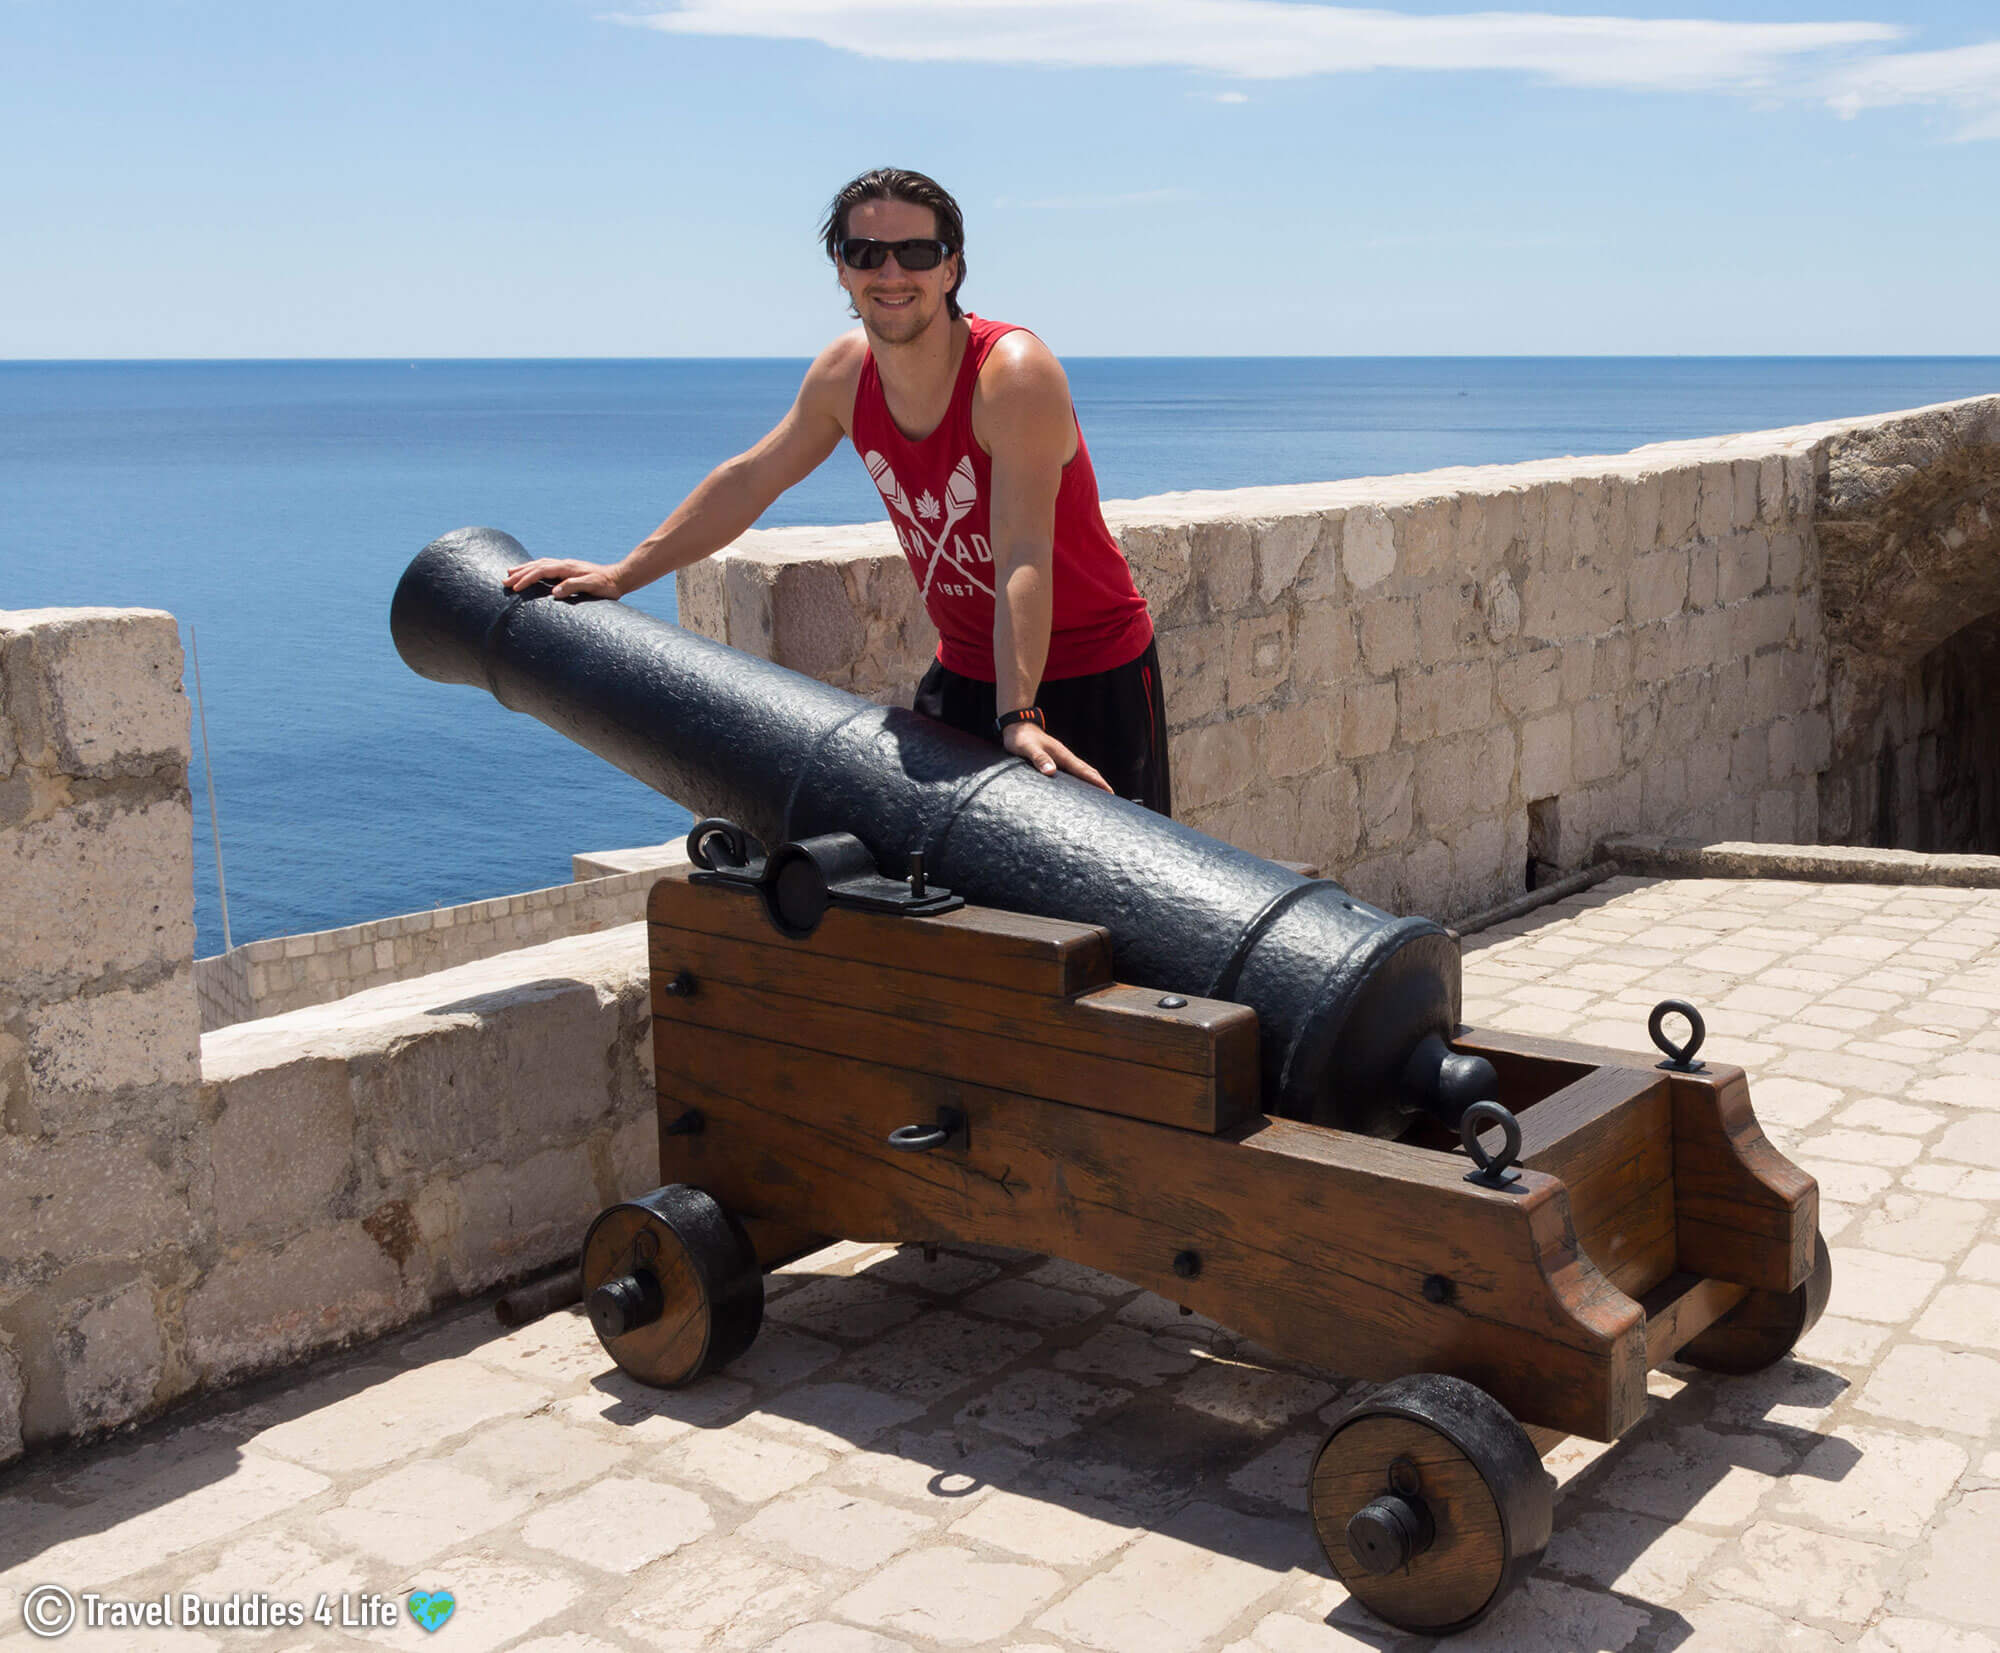 Joey with a Canon in Dubrovnik's Fortress by the Sea